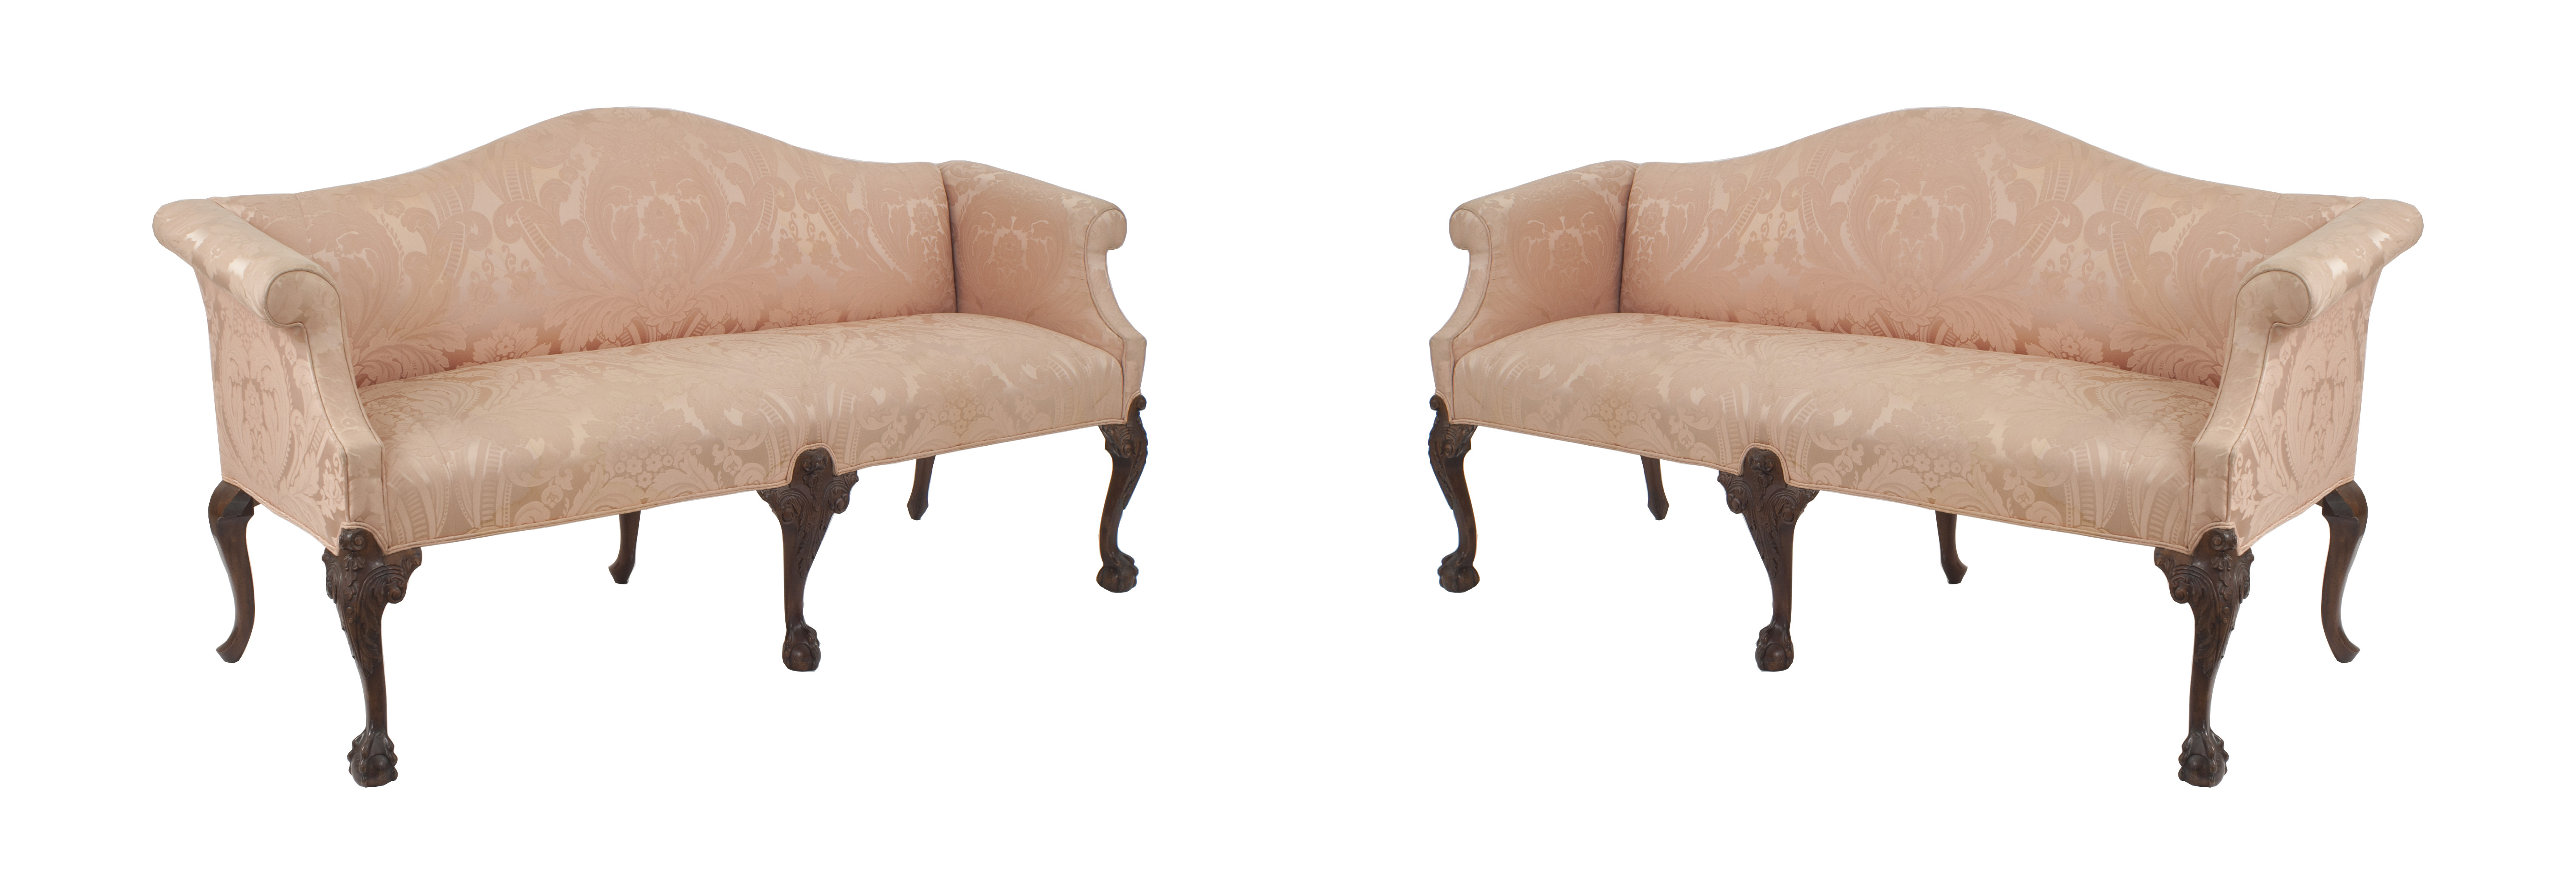 Outstanding English Chippendale Pink Upholstery Settees Newel Machost Co Dining Chair Design Ideas Machostcouk